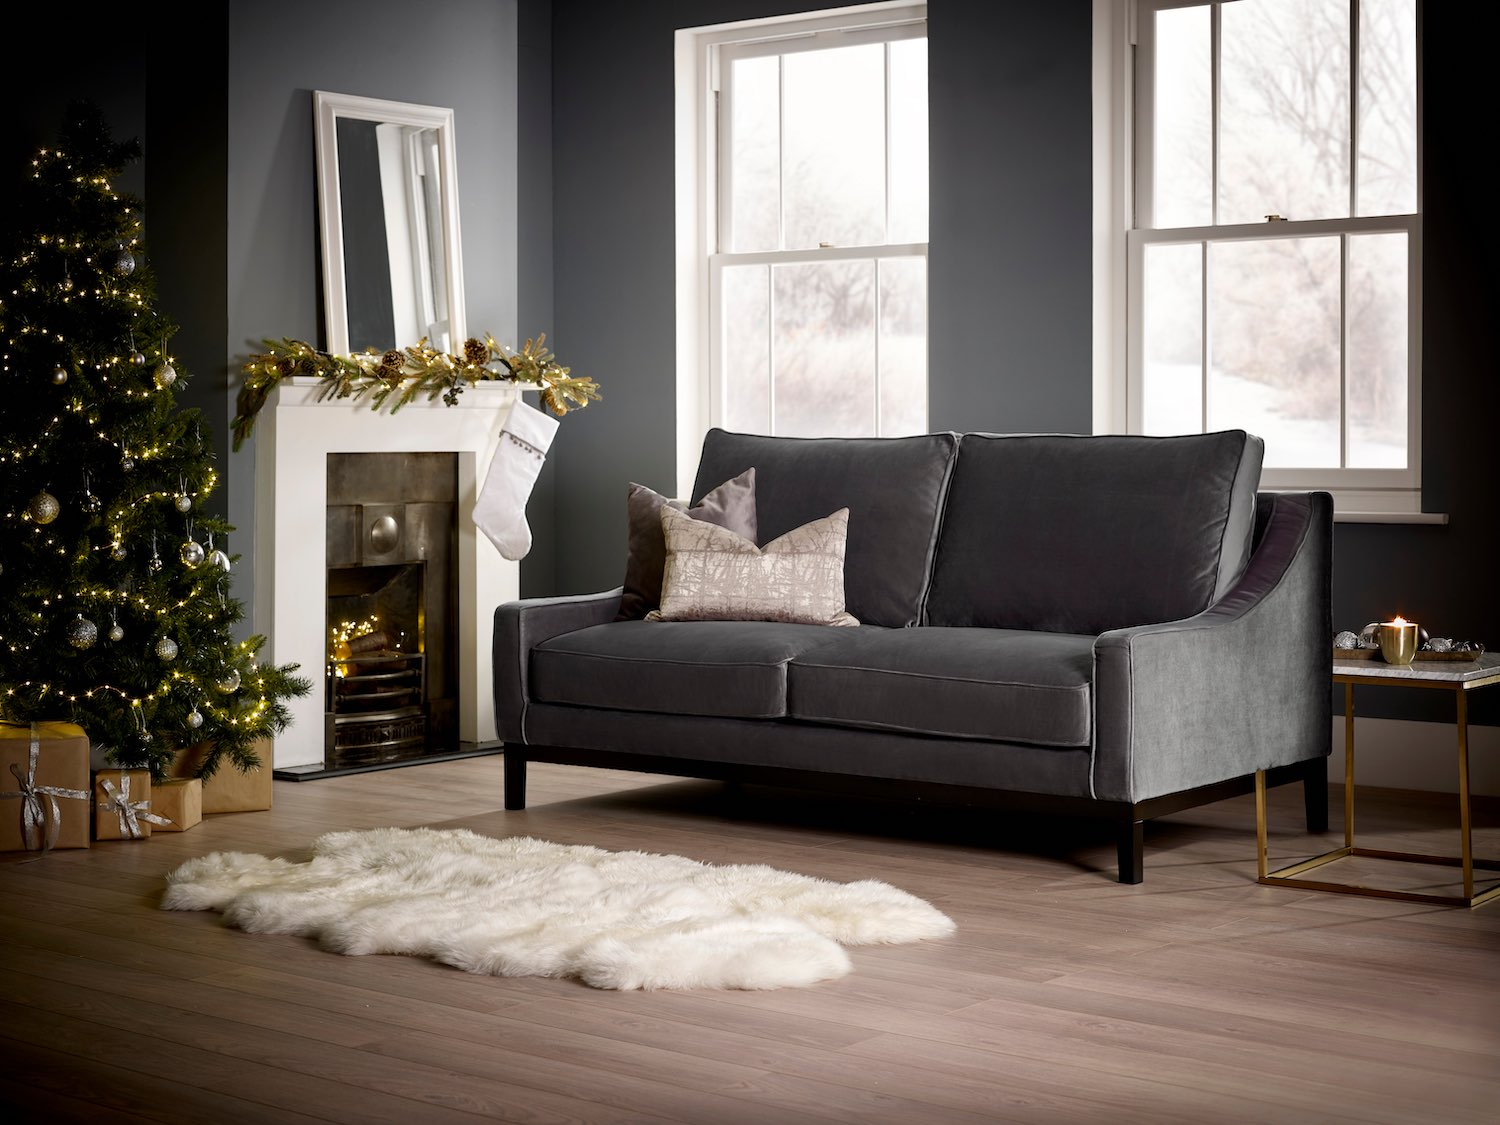 Living it Up has a selection of stunning sofas decorated perfectly with a Christmas theme, showing you how you can update your home Christmas with just a few easy touches.